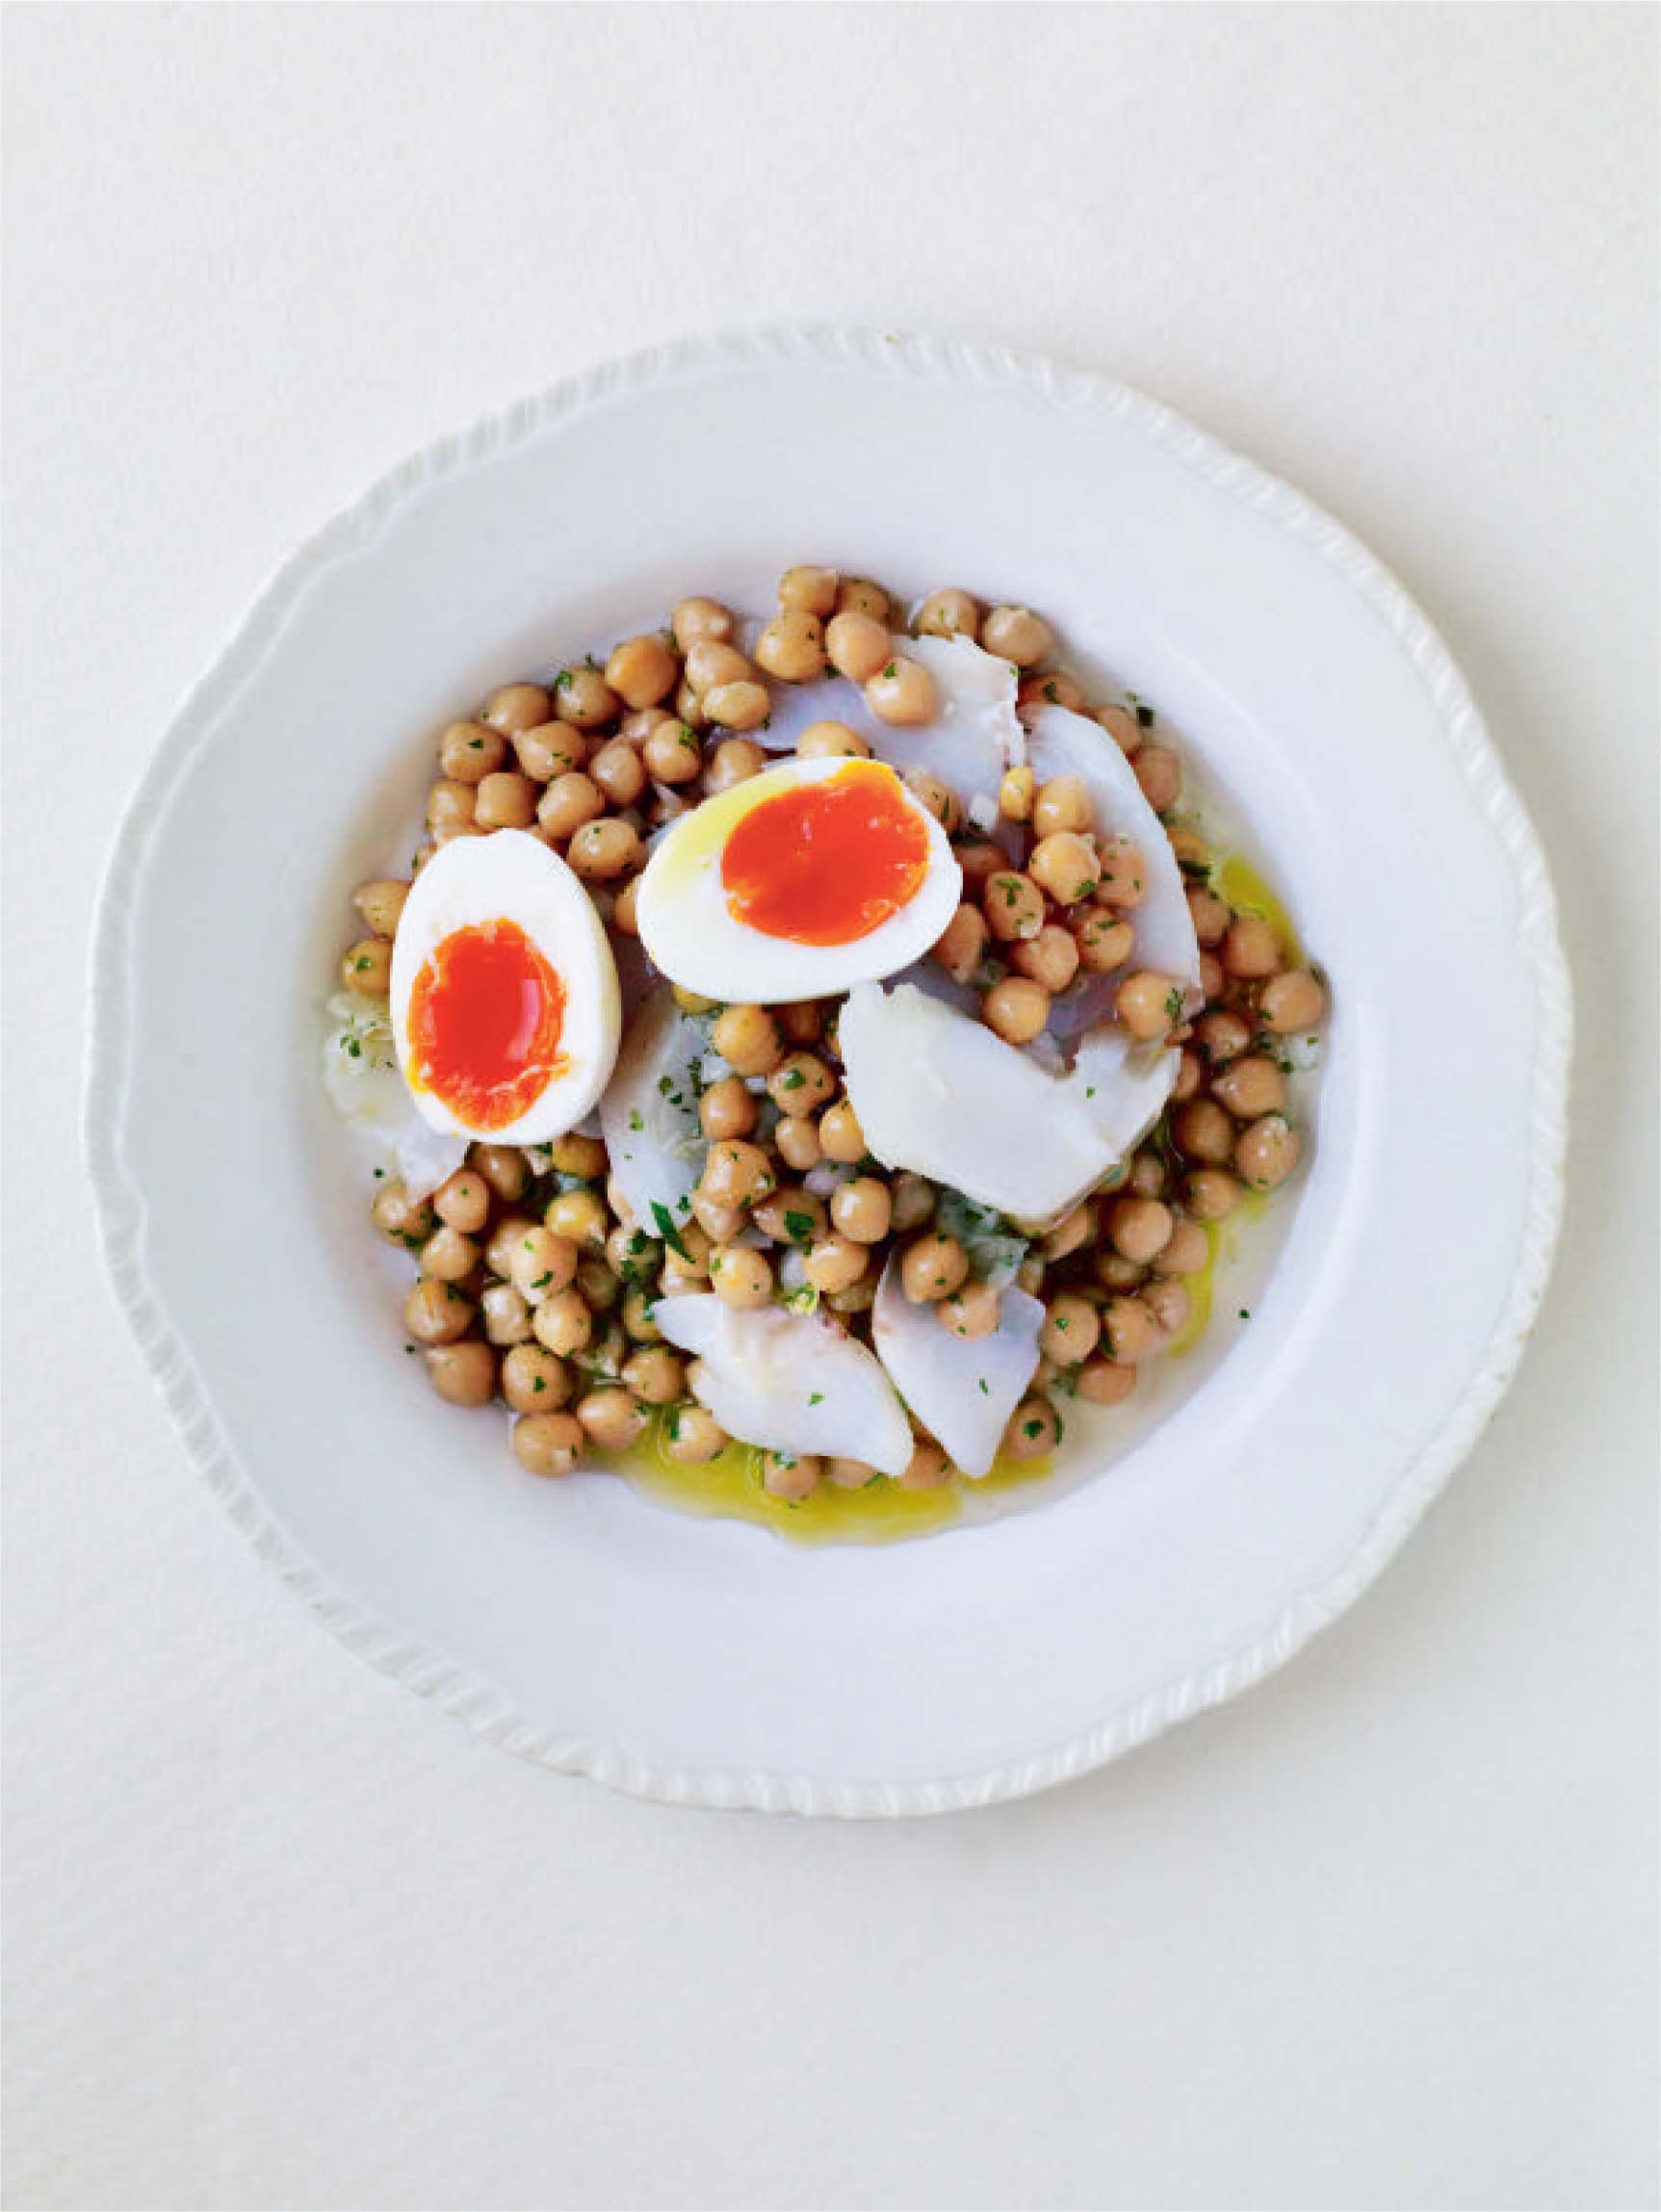 Confit cod, egg and chickpea salad